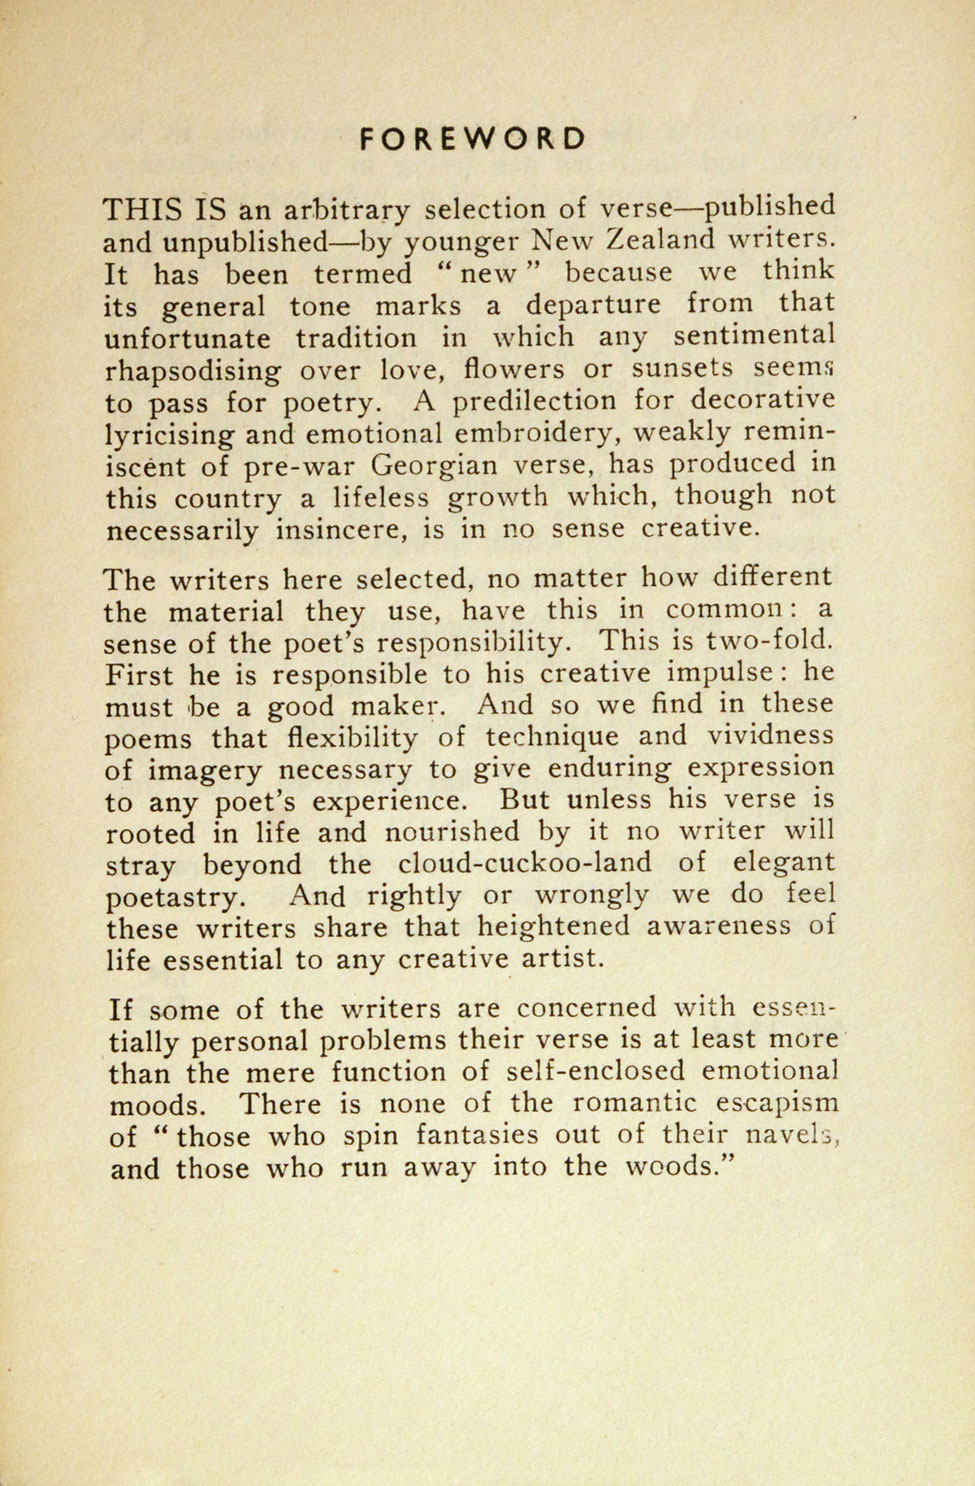 New Poems: Selected by Ian Milner and Denis Glover. <i>Christchurch: The Caxton Club Press, 1934.</i>